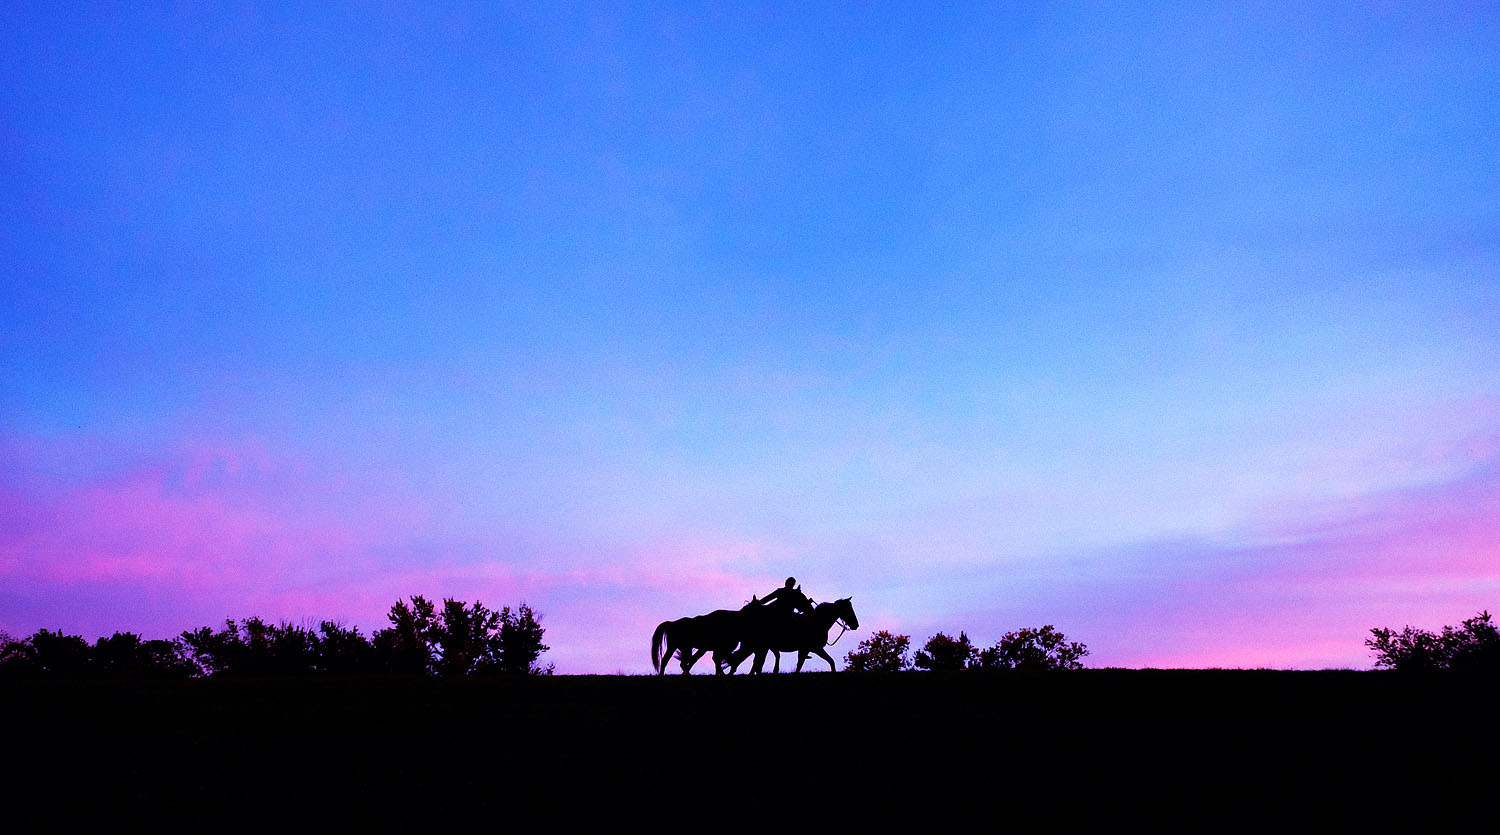 Horses at sunset in Virginia